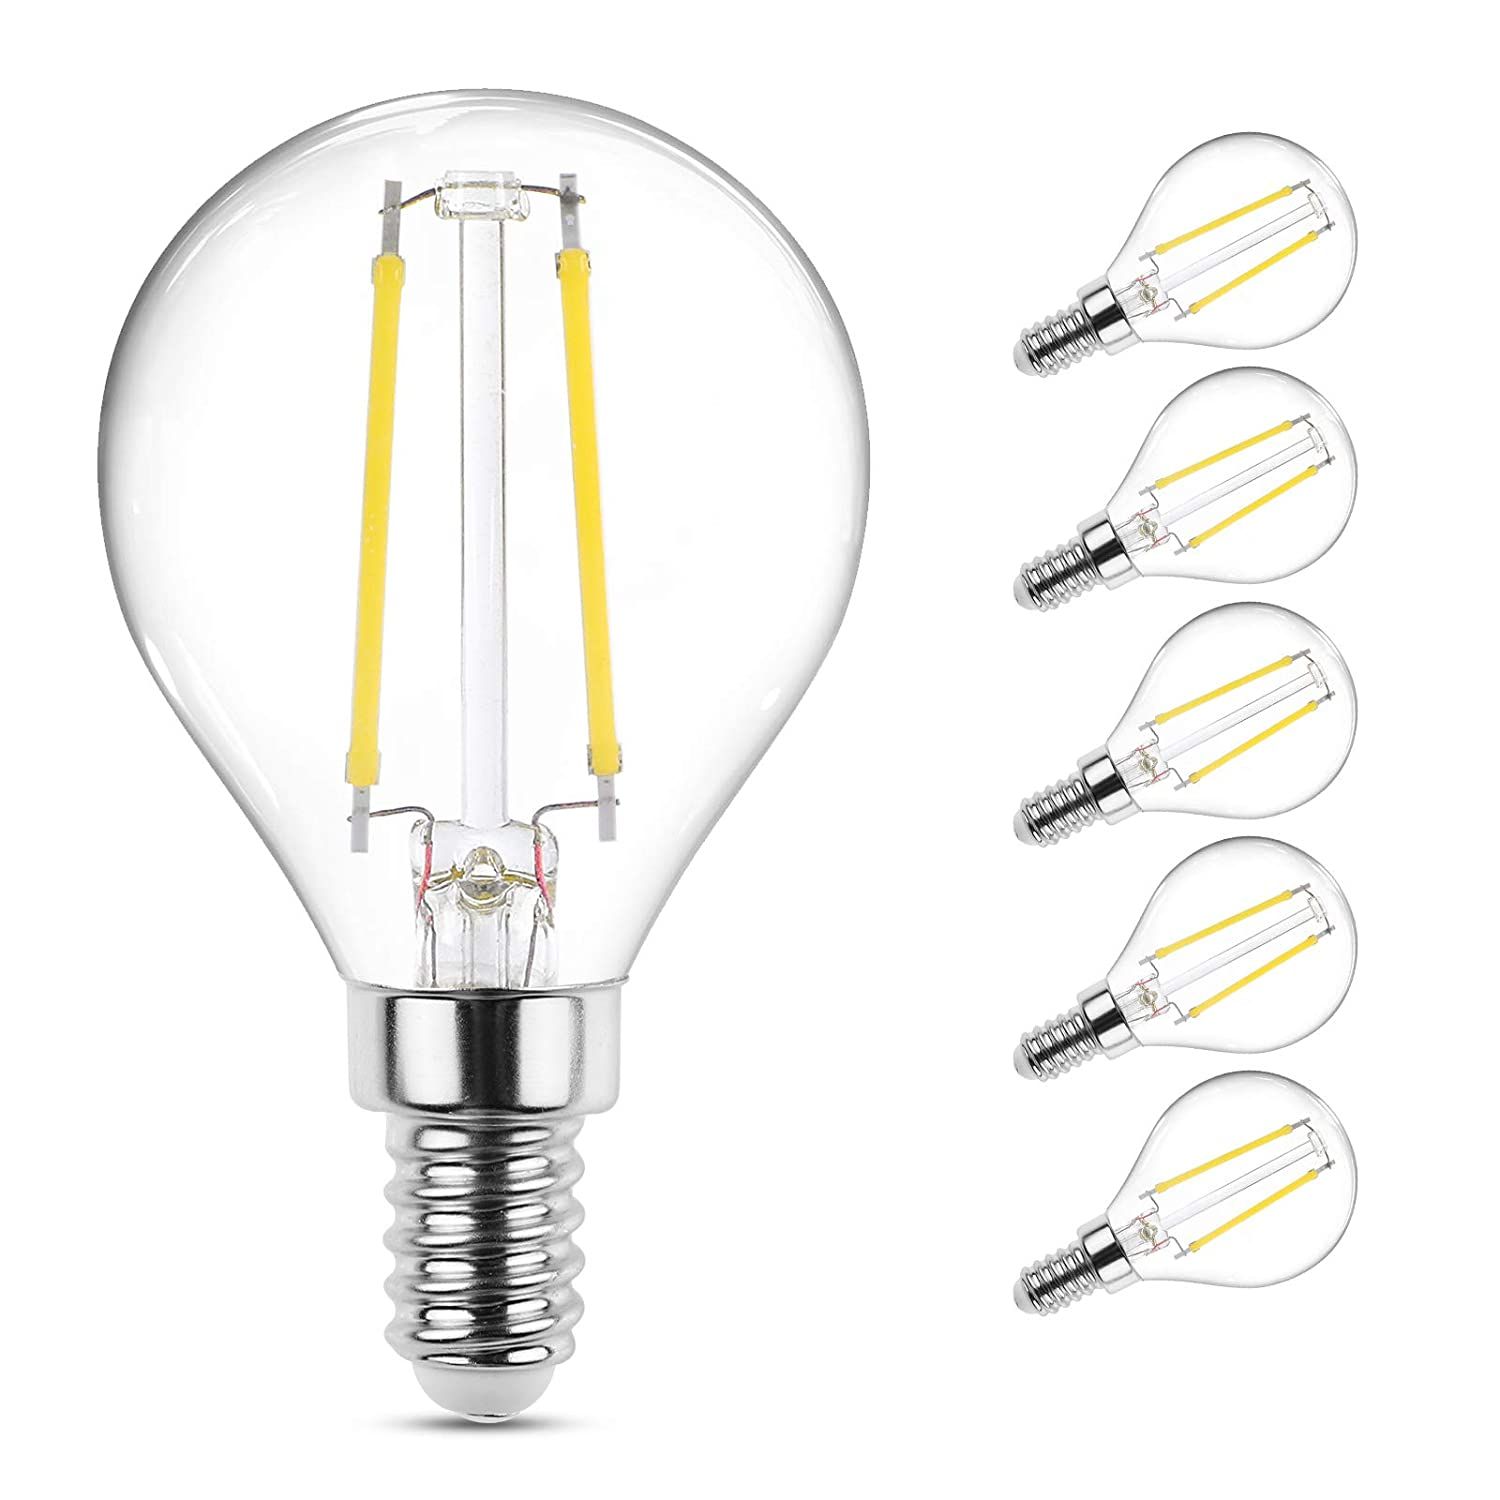 Ascher E12 LED Classic Candelabra Clear Light Bulb, 4W, Equivalent 40W, Daylight White 5000K, Filament Clear Glass, Non dimmable/Pack of 5